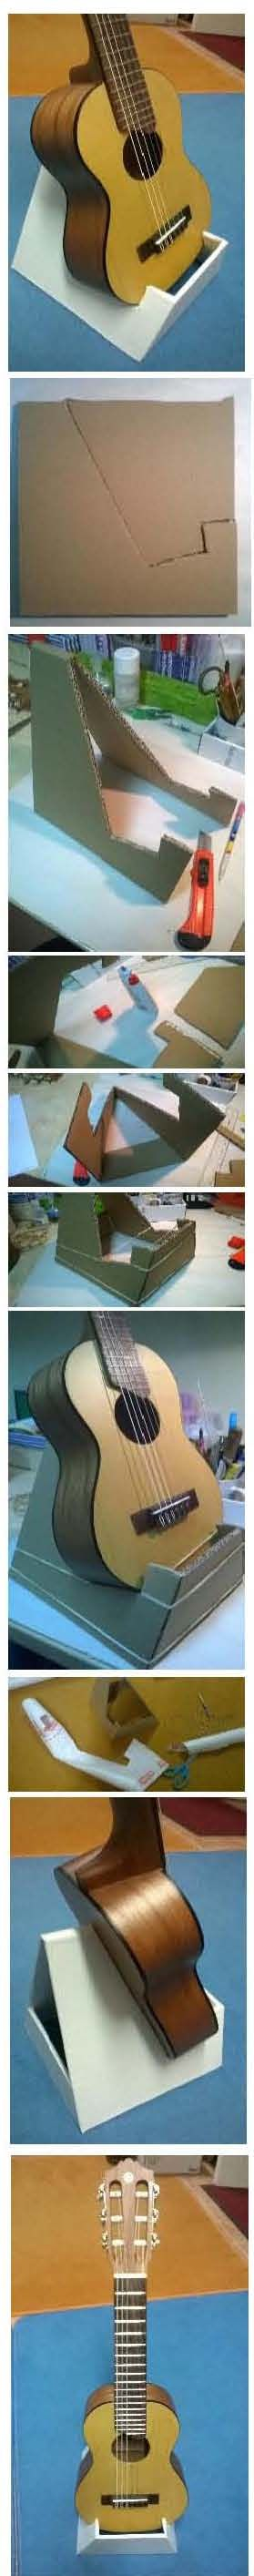 This is my DIY guitalele stand / guitar stand cardbord:   (guitar+ukulele=guitalele) you only need cardbaord, some glue, a knife and foil to cover. And an instrument ;-)